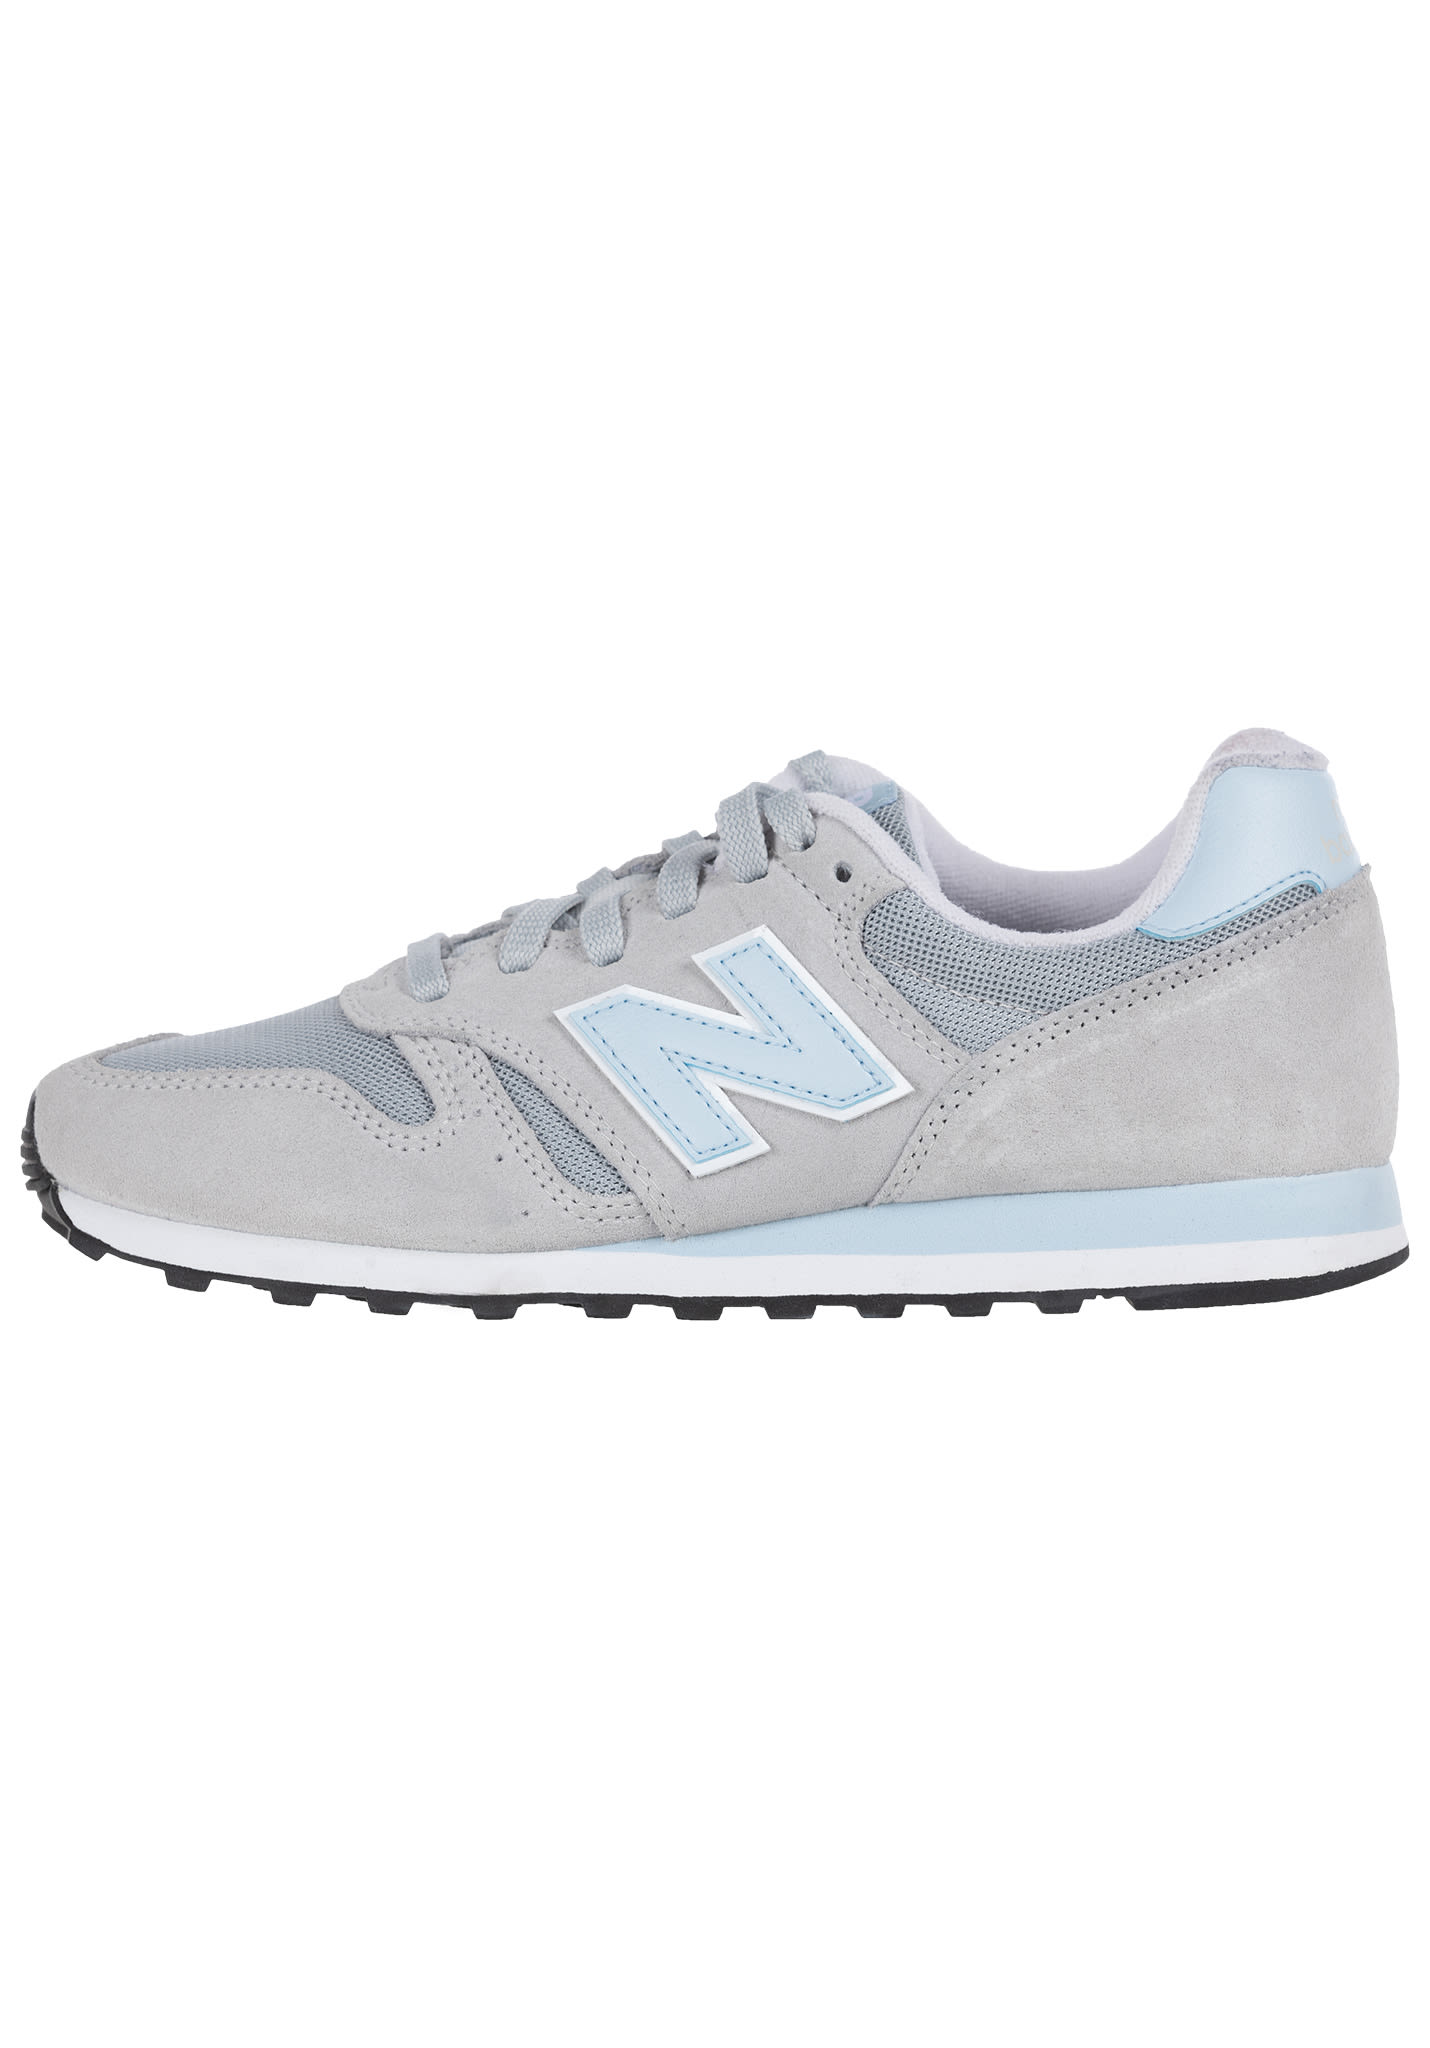 timeless design d90ae 4e66f NEW BALANCE WL373 B - Sneakers for Women - Grey